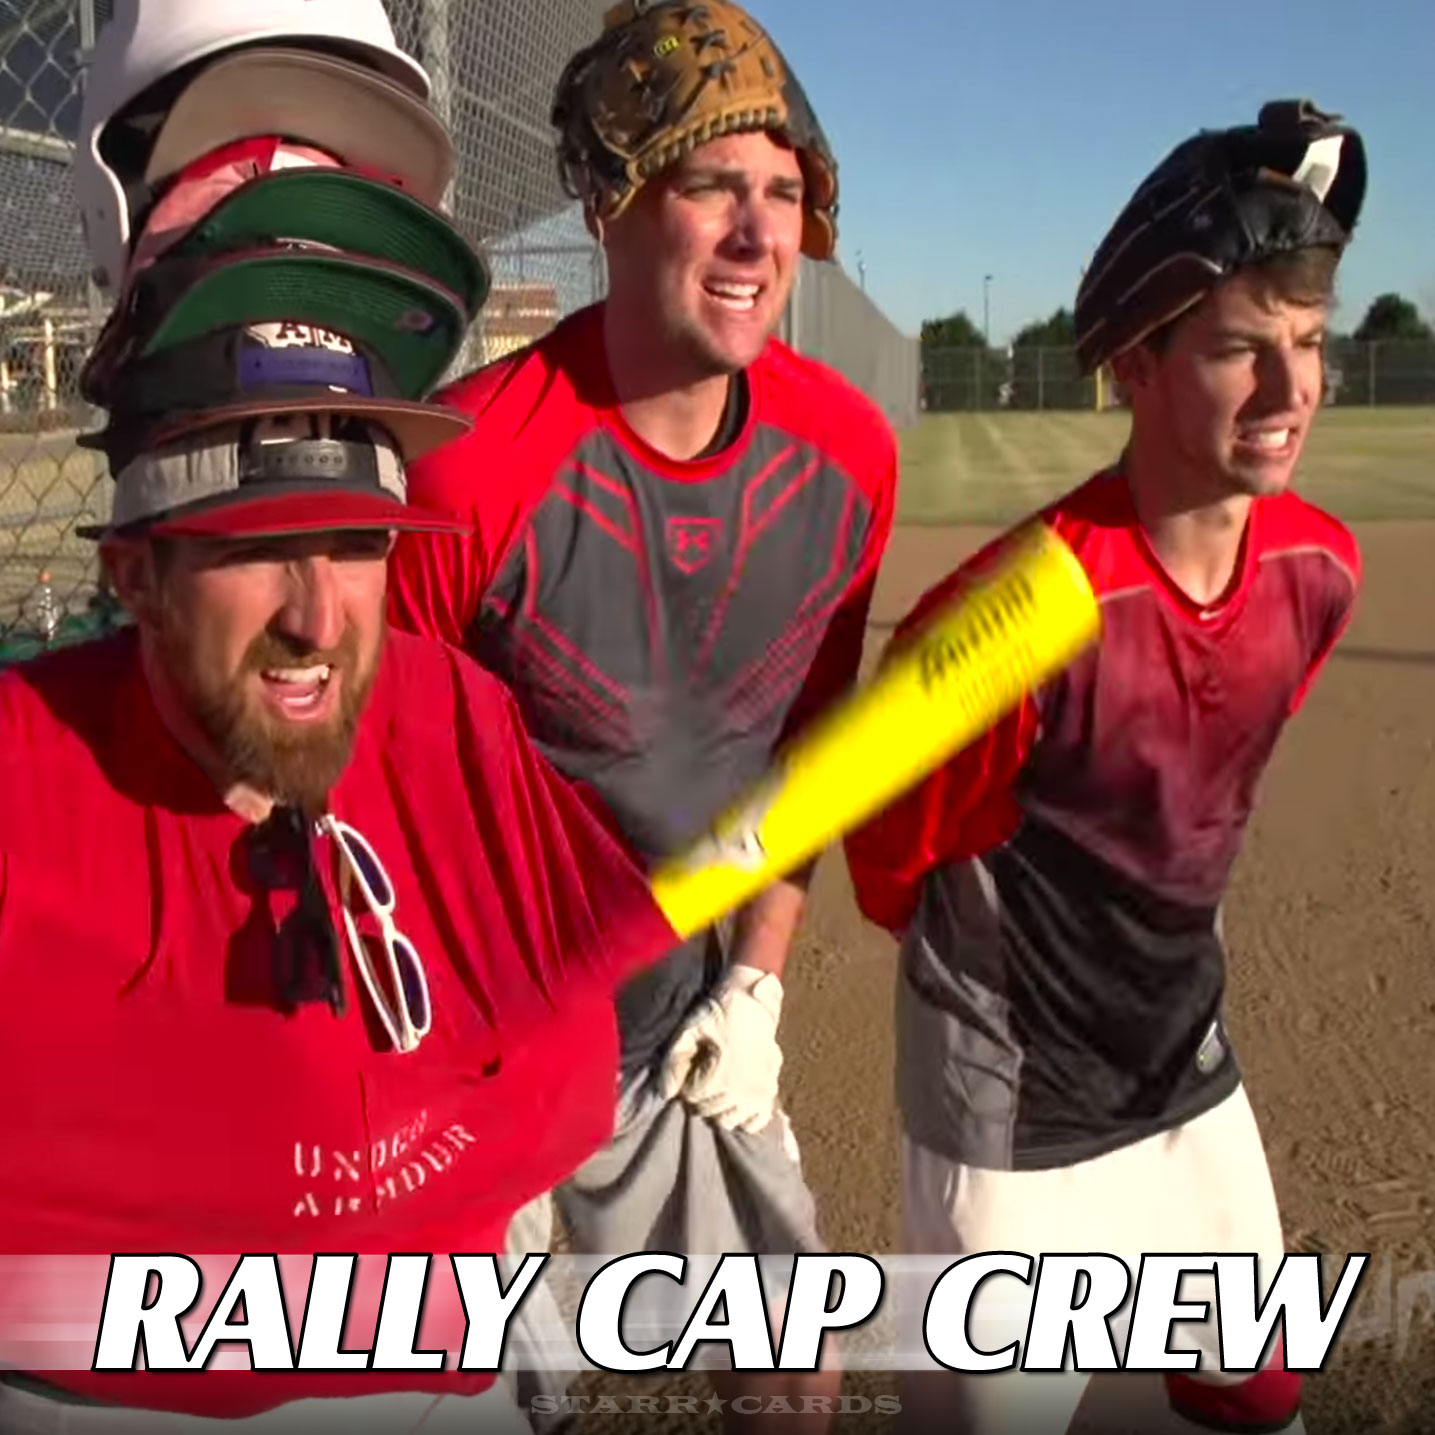 Dude Perfect explores softball stereotypes